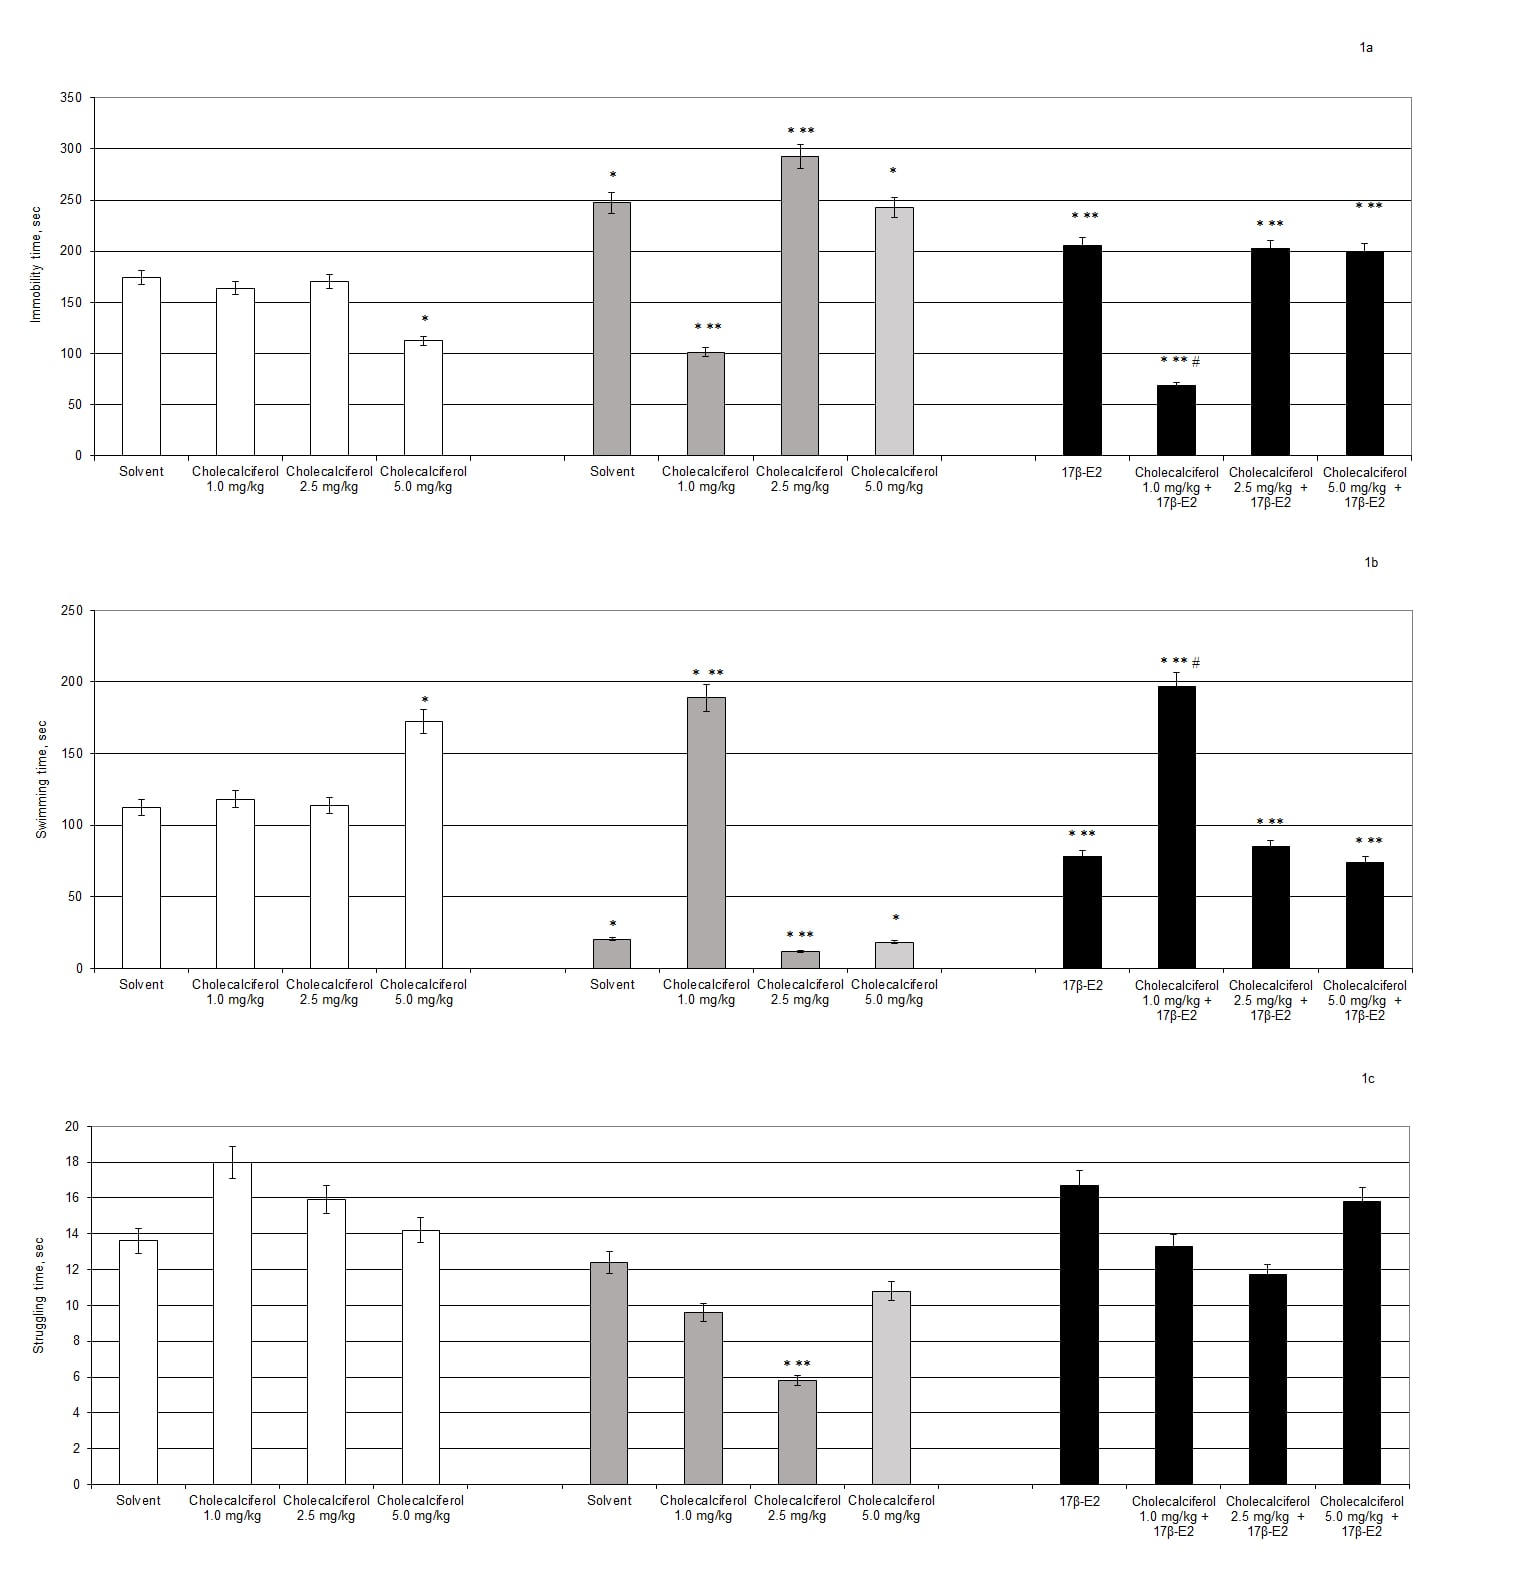 Figure 1. Effects of cholecalciferol administration on depression-like behavior of ovariectomized (OVX) rats following long-term estrogen deficiency in the forced swimming test.  (a) – immobility time, sec; (b) – swimming time, sec; (c) – struggling time, sec.  * - P < 0.05 as compared to the control group of sham-operated rats, # - P < 0.05 as compared to the OVX rats treated with solvent, ## - P < 0.05 as compared to the OVX rats treated with 17β-estradiol. Each group comprised a minimum of 8 rats. Cholecalciferol was given at 1.0, 2.5 or 5.0 mg/kg/day, s.c., once daily, for 14 days. 17β-Estradiol (17β-E2) was given at 0.5 µg/rat, s.c., once daily, during 14 days.